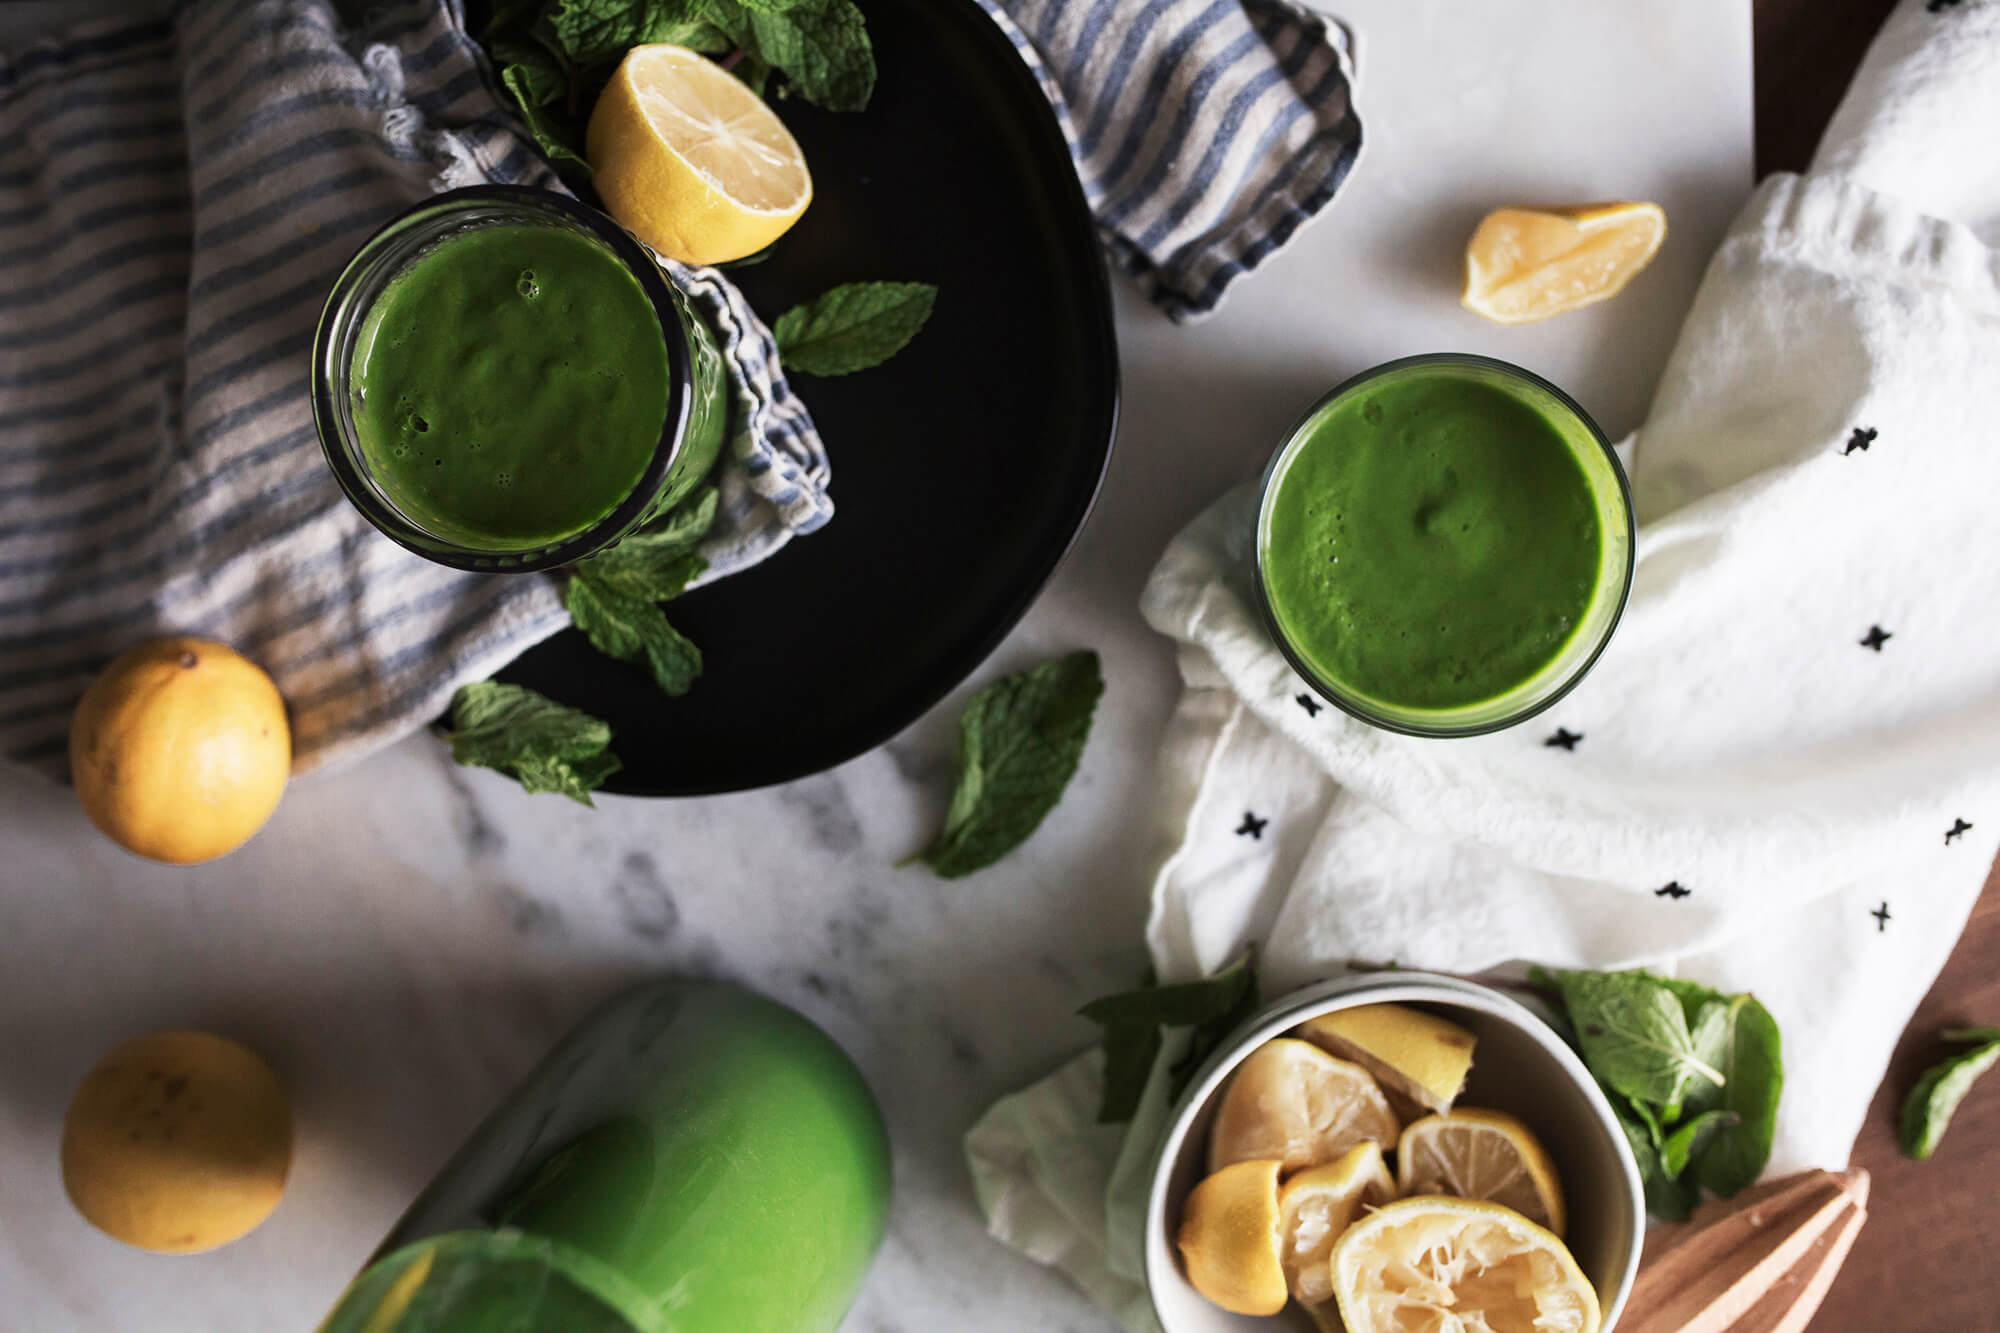 Dr. Gundry's 3-Day Detox Green Smoothie Recipe